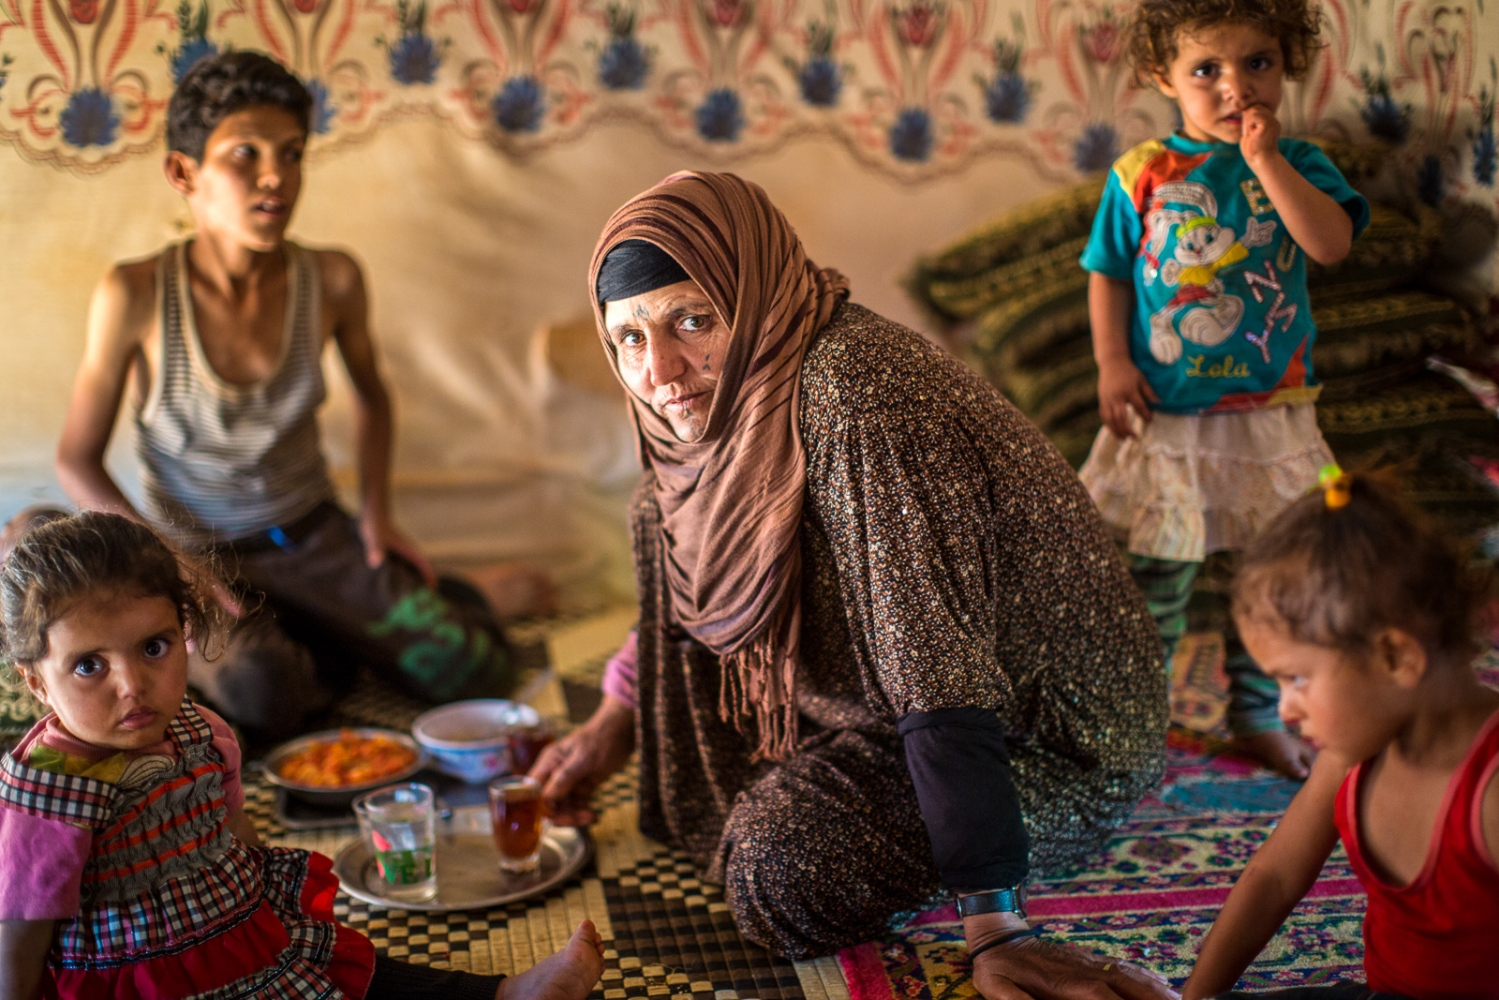 Bekaa Valley, LEBANON, September 5, 2015: Syrian refugee Amina with four of her five children in their tent. She is the center of their lives as their father or other male figures are absent. Many female refugees are single parents, as their husbands have gone missing or been killed in the Syrian war.